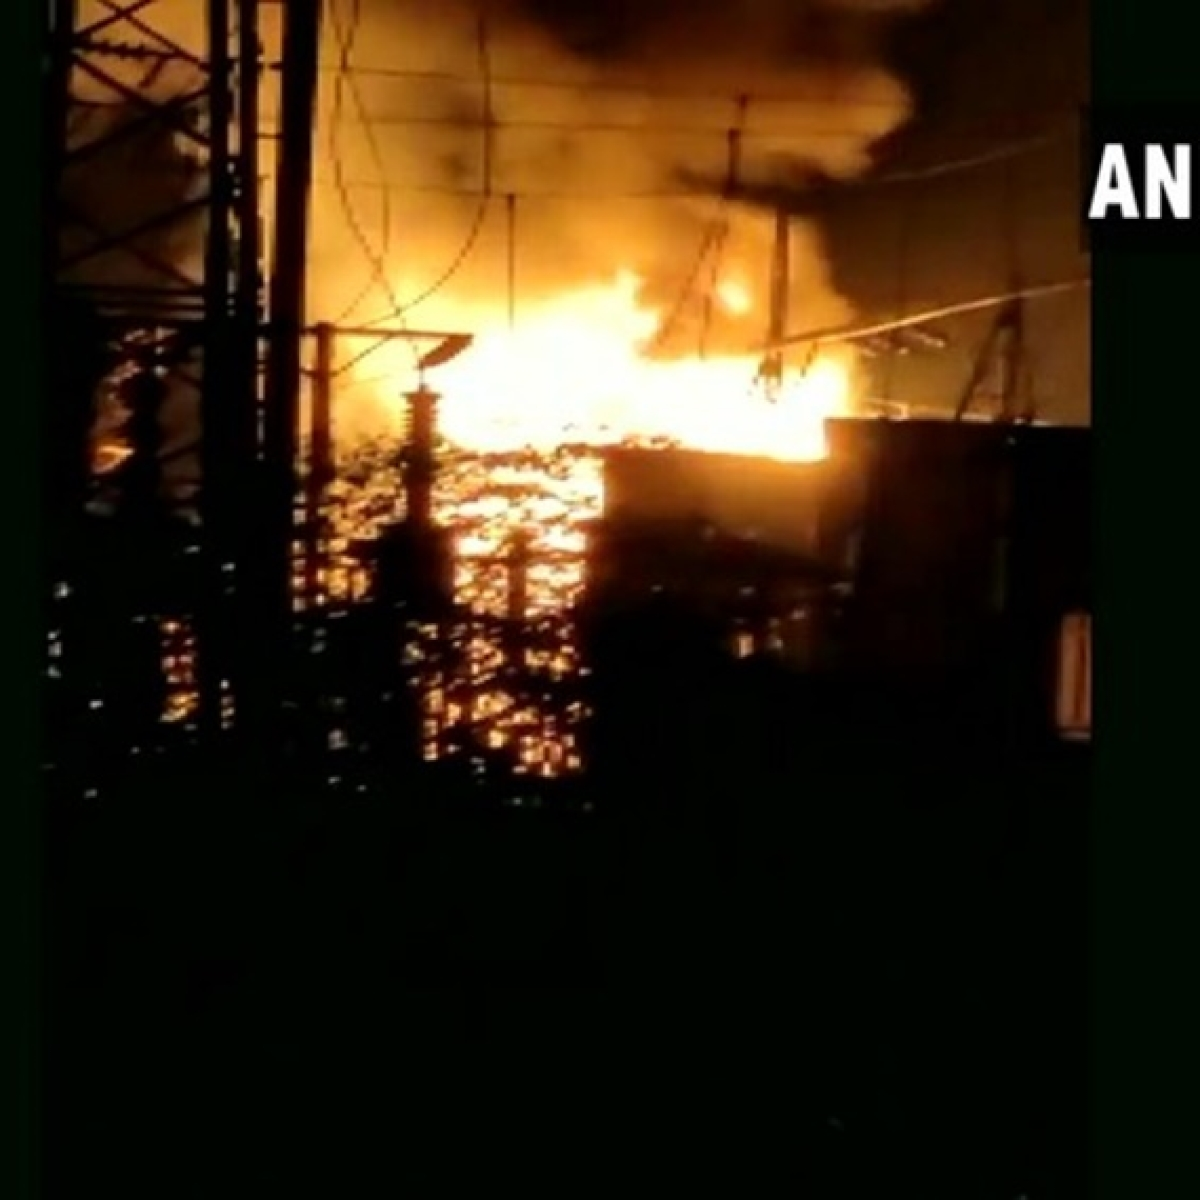 Fire breaks out at electrical sub-station in Andhra Pradesh's Visakhapatnam, no casualty reported